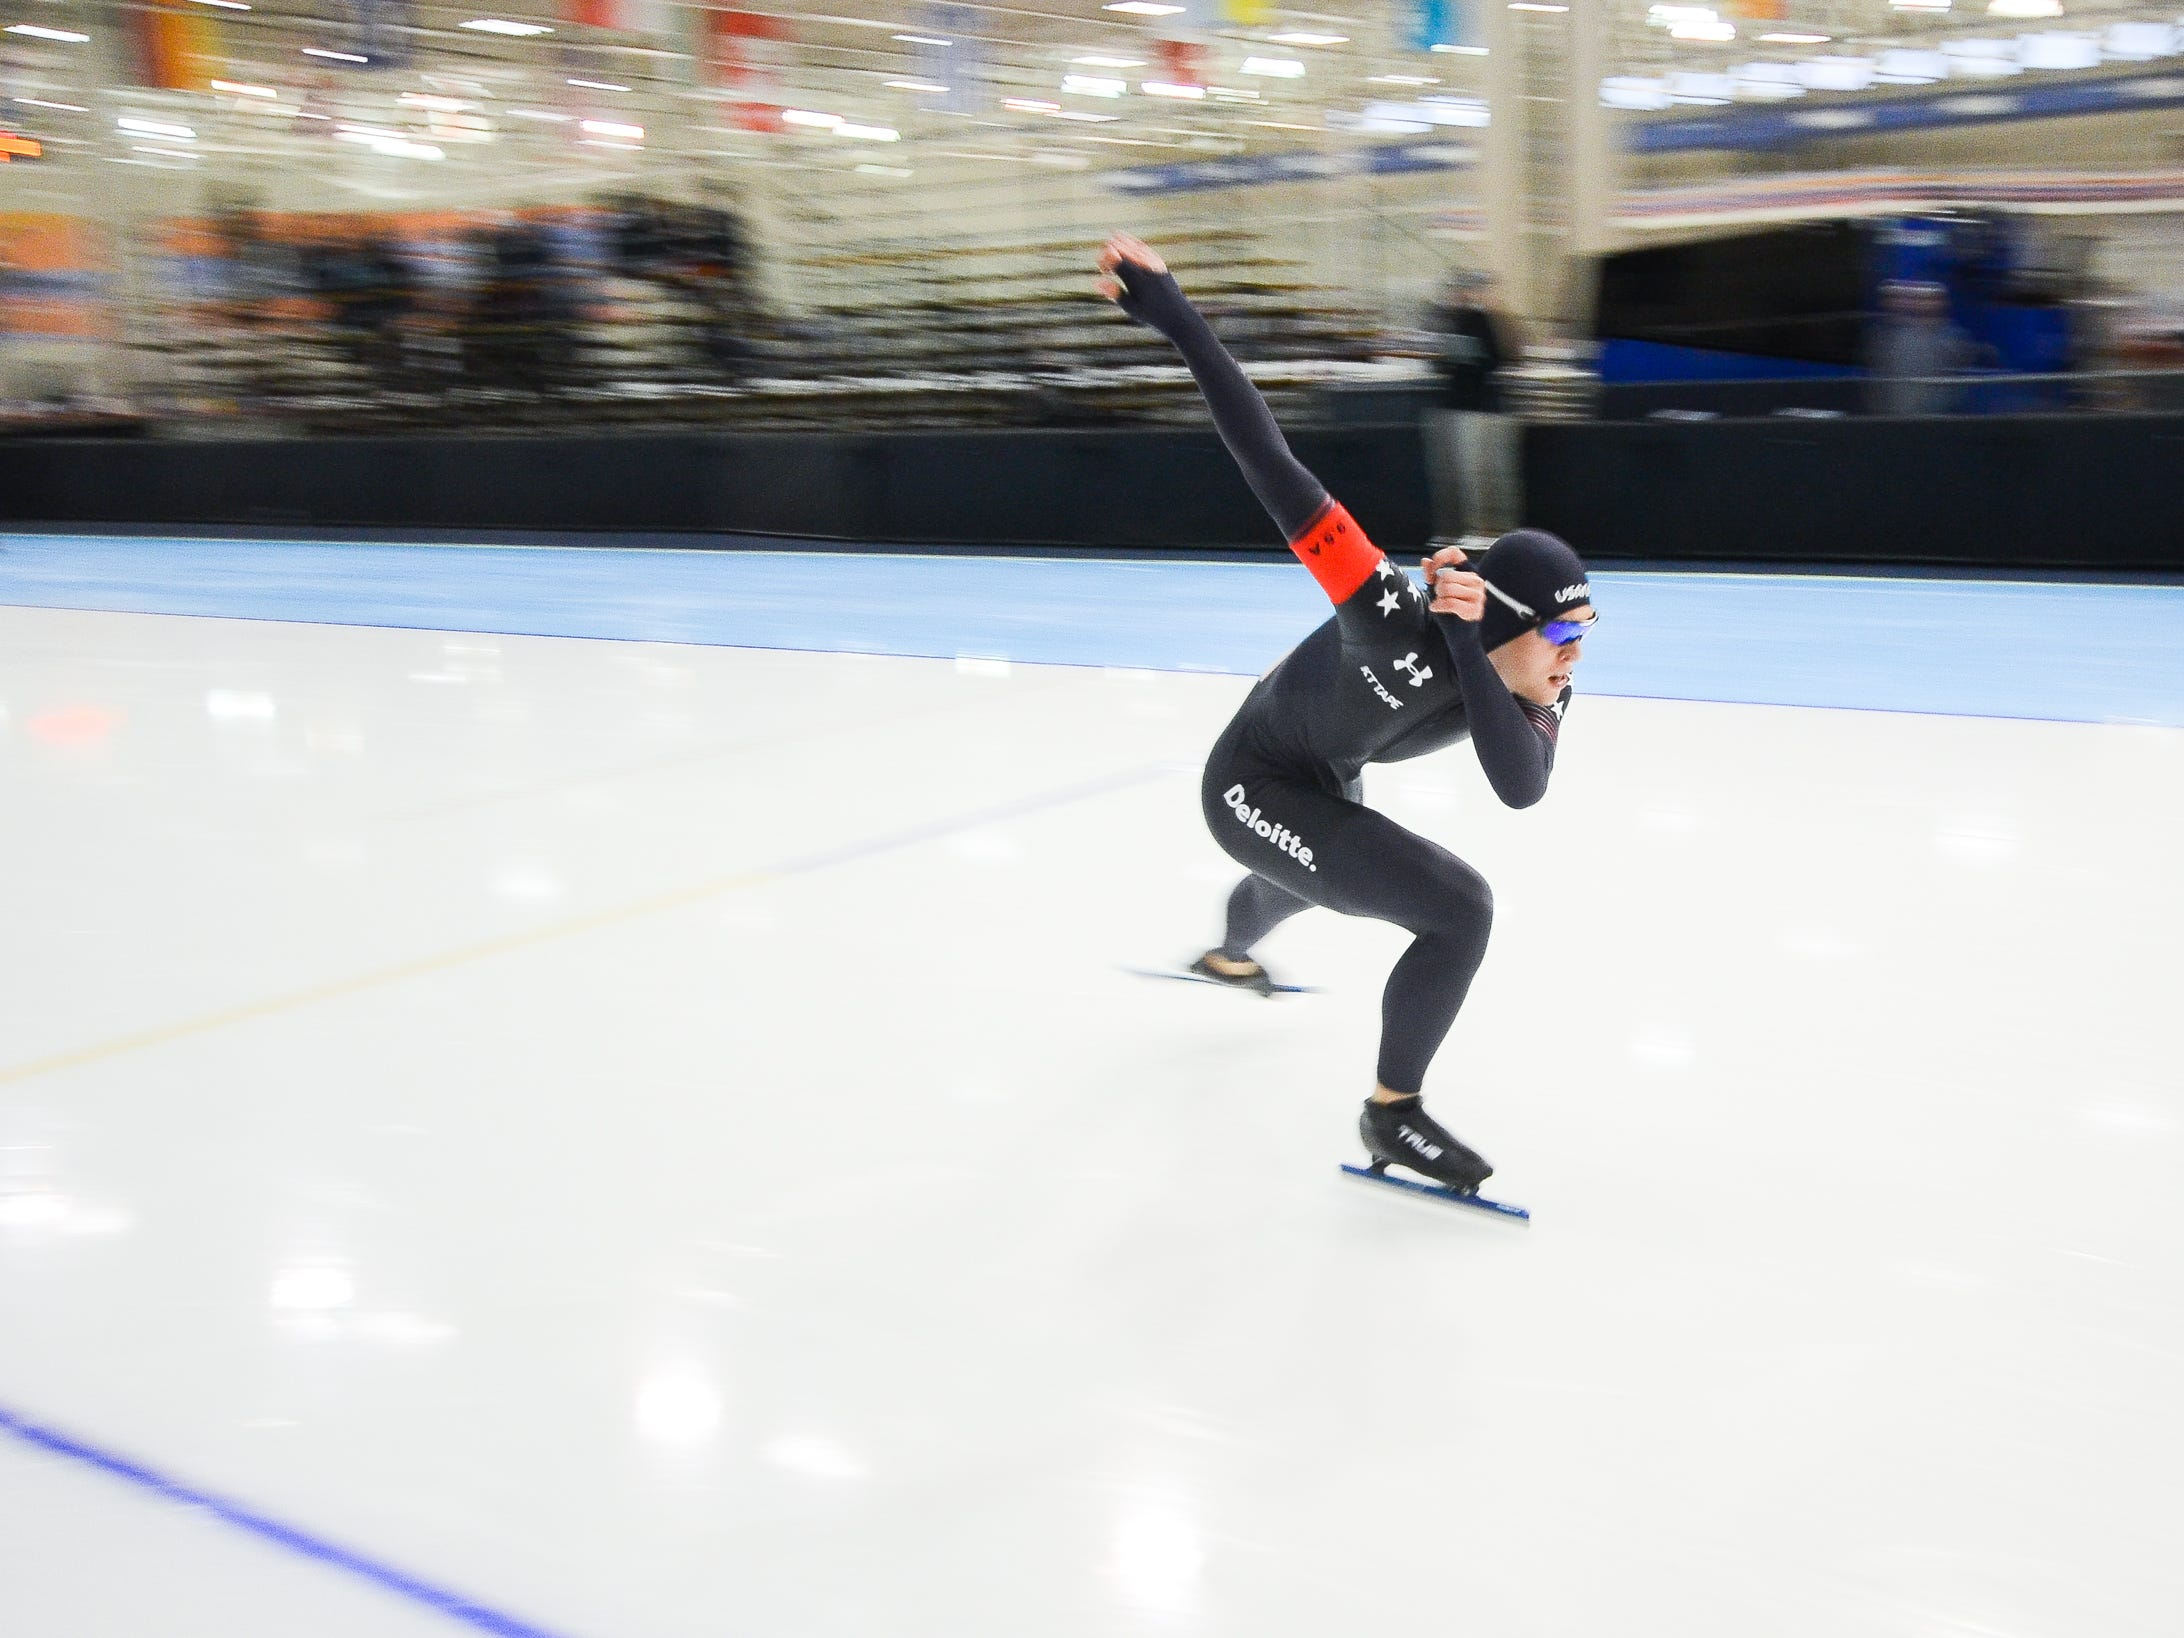 William Gebauer competes in the men's 1,500 meters at the U.S. World Cup qualifying event Sunday, November 4, 2018, at the Pettit National Ice Center. He finished 10th.